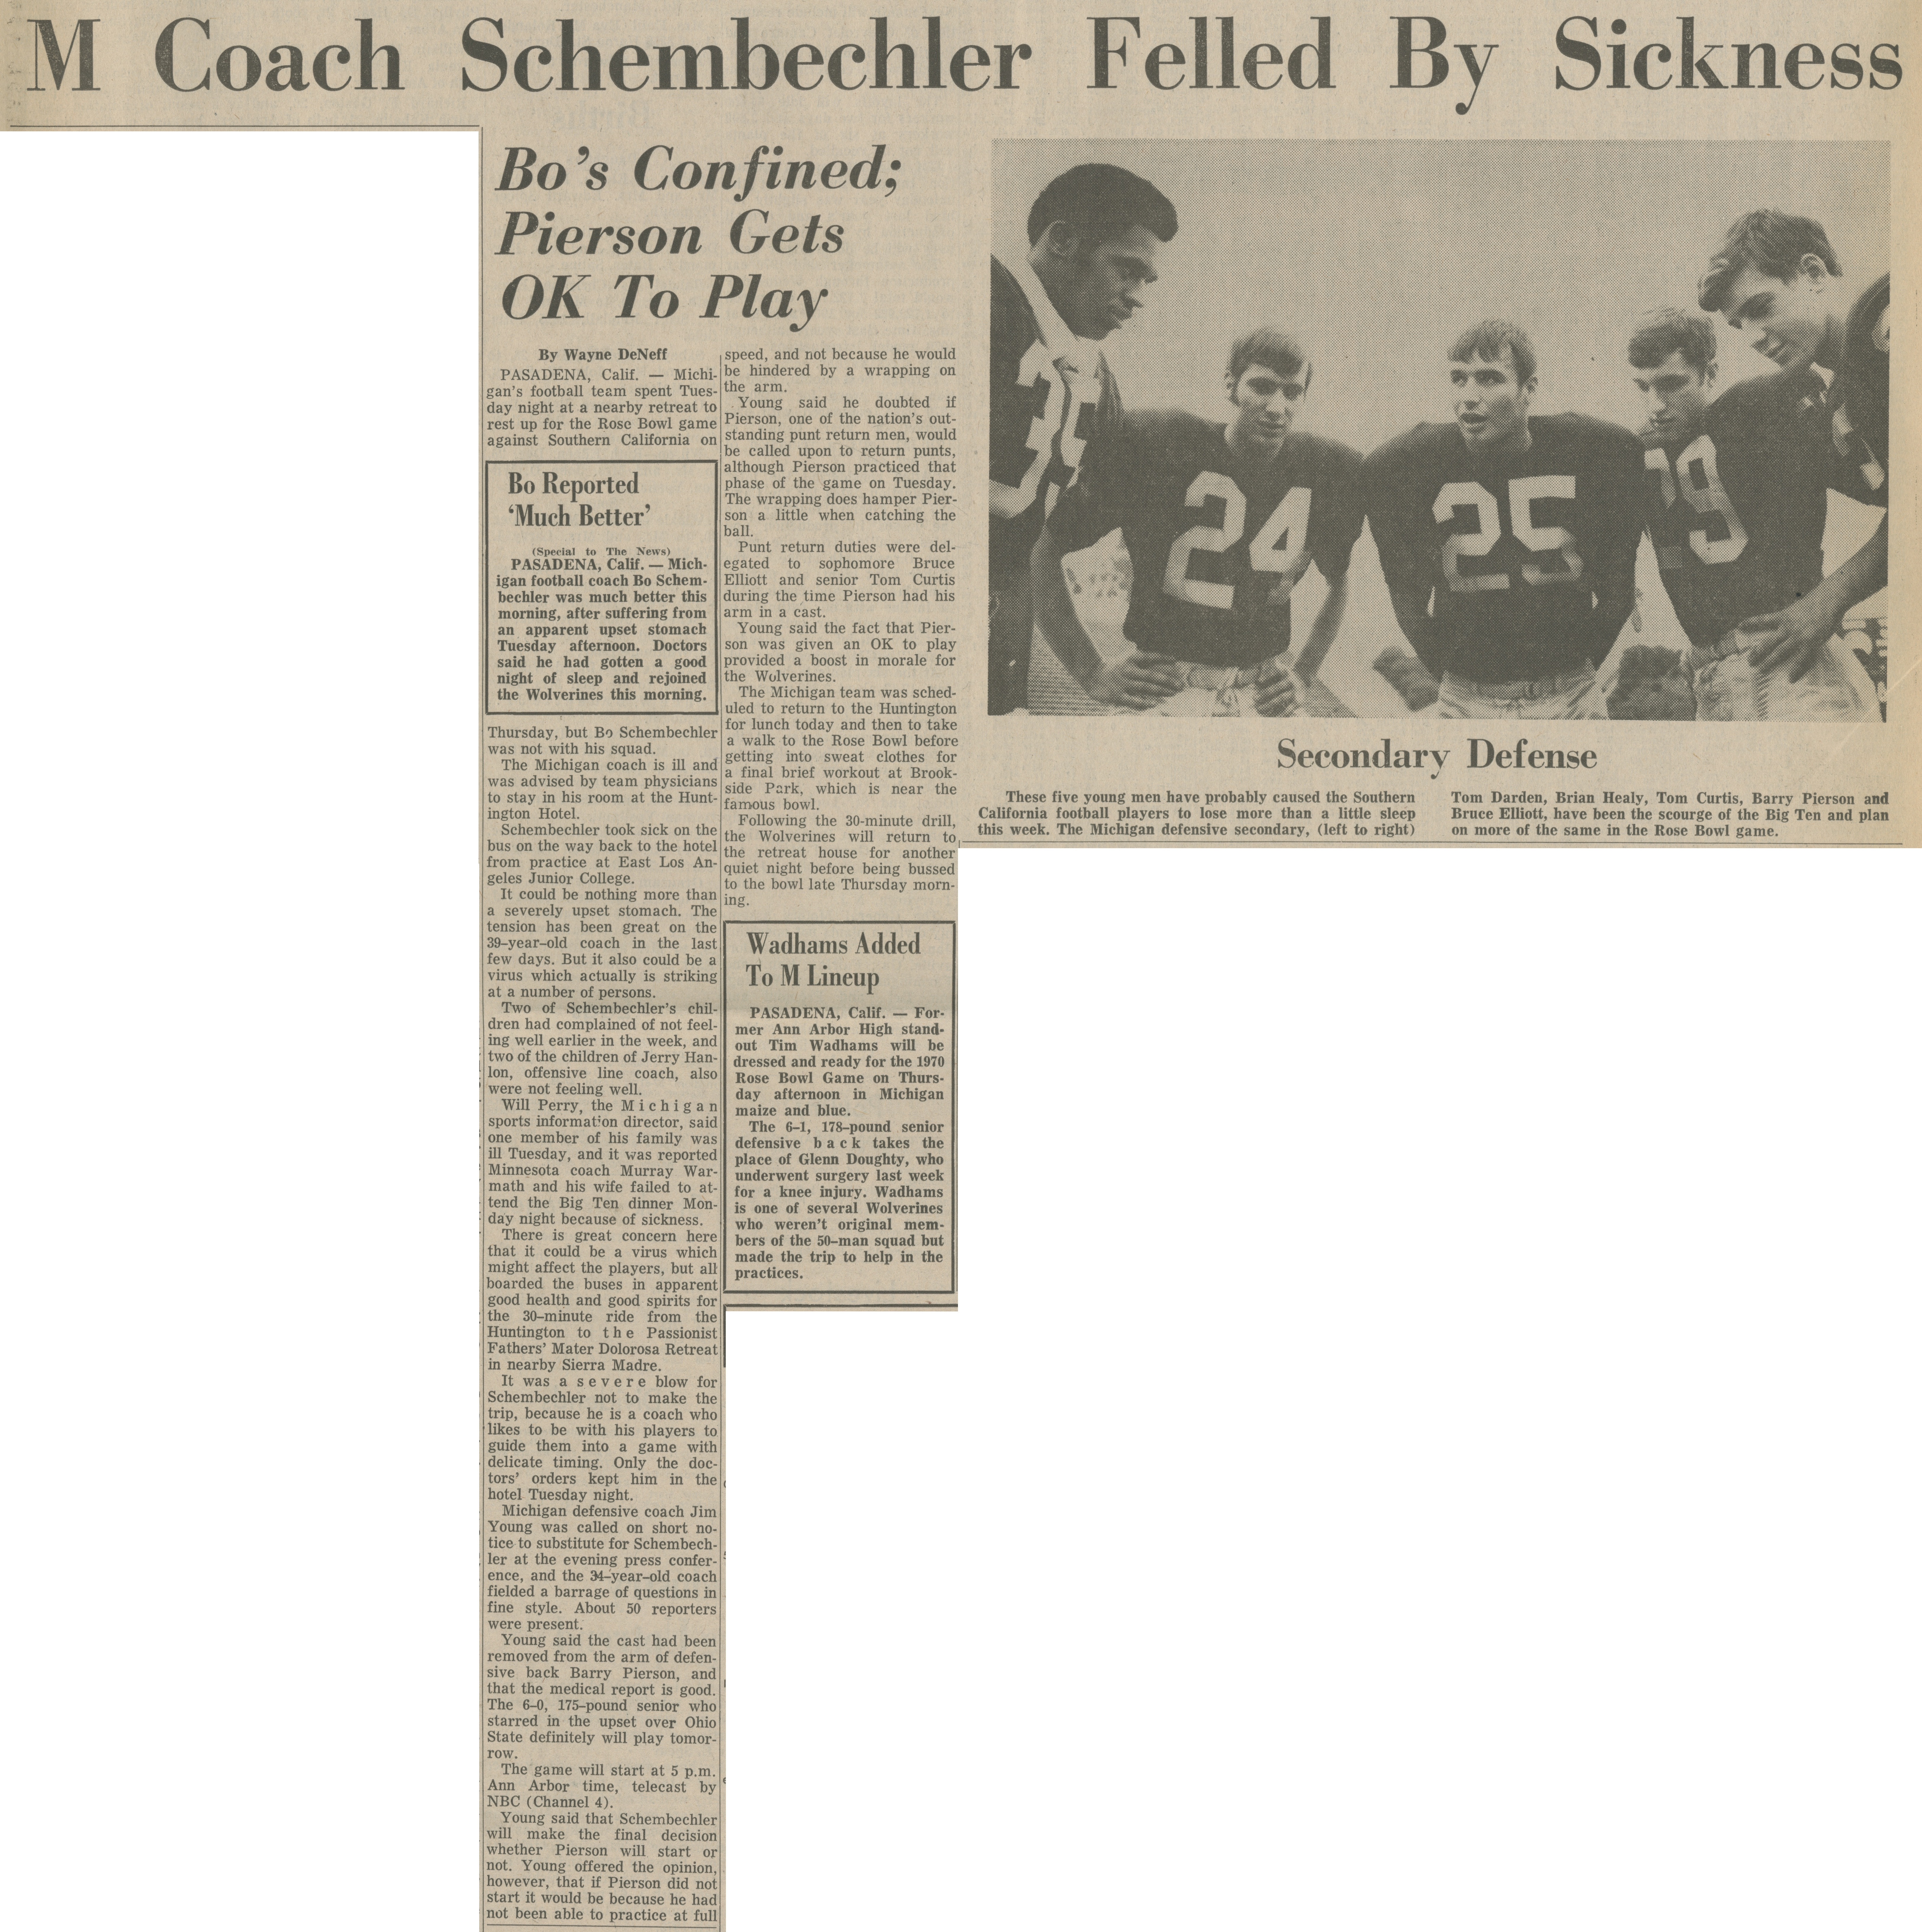 M Coach Schembechler Felled By Sickness image